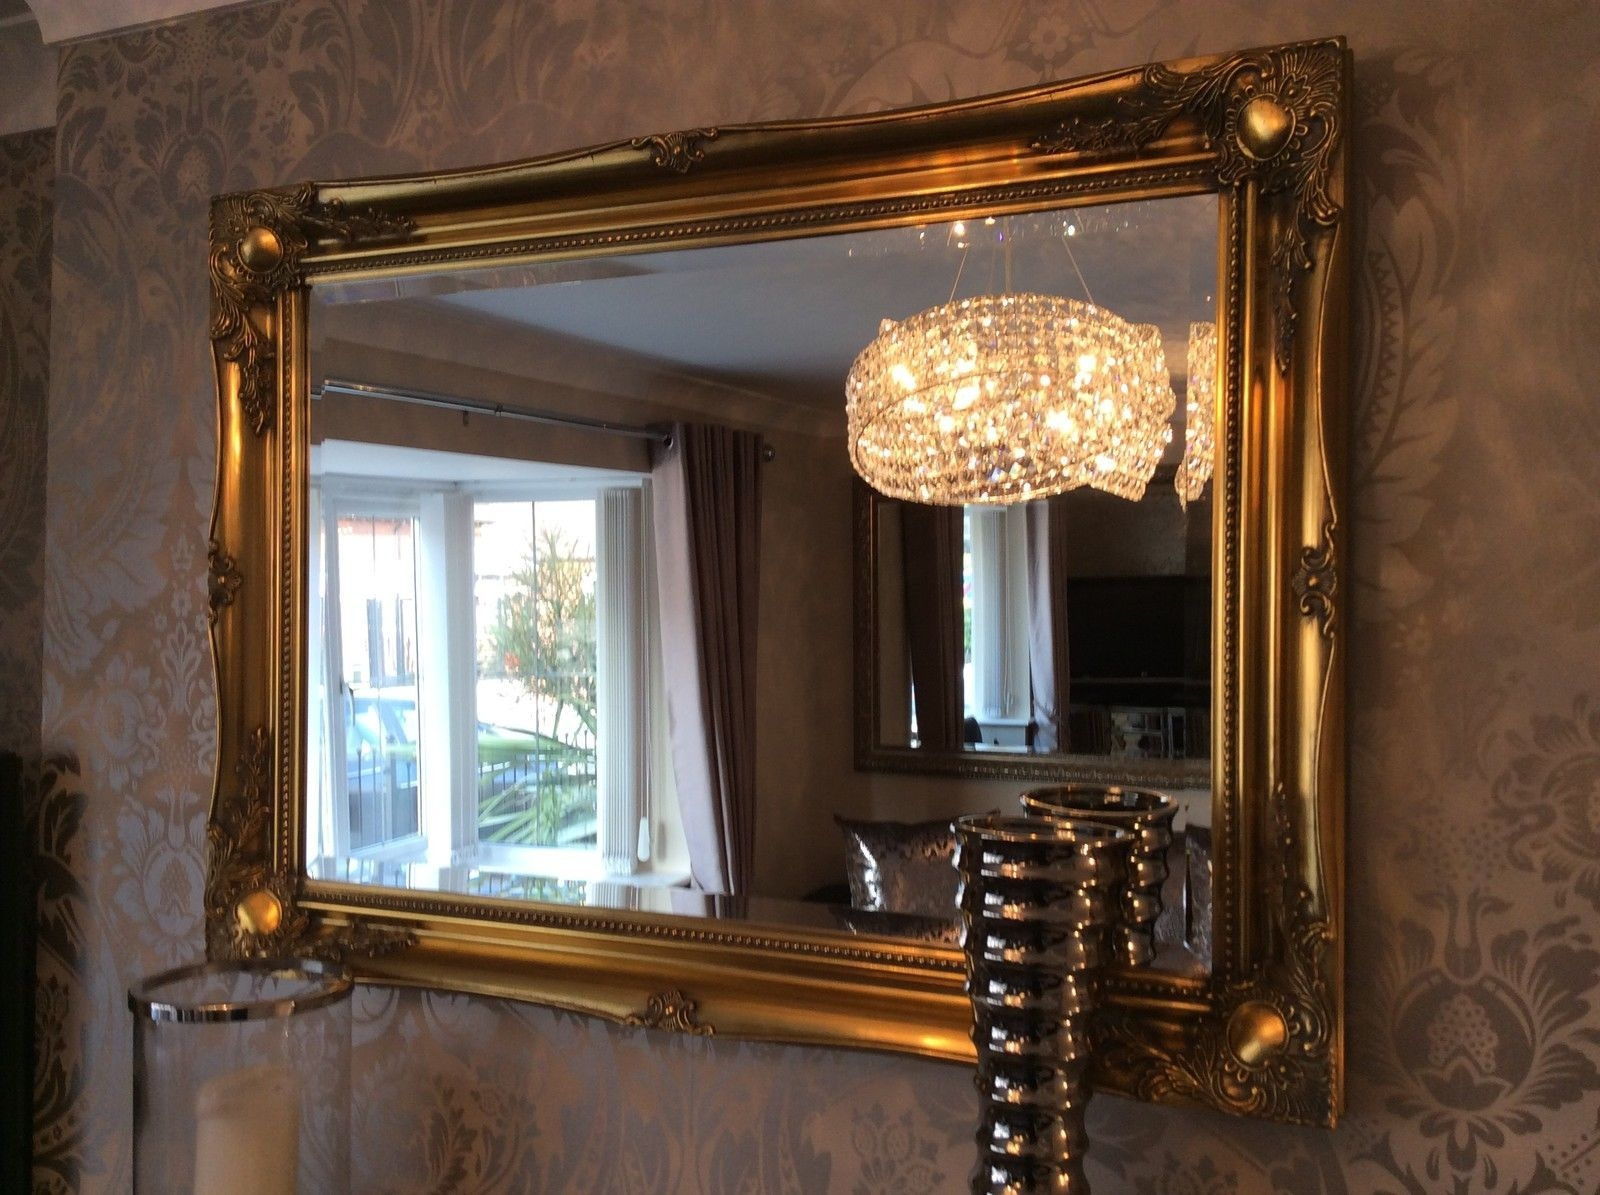 Big Mirrors Uk Plain Design Extra Large Wall Mirror Inspiration Regarding Large Ornate Wall Mirrors (View 6 of 15)